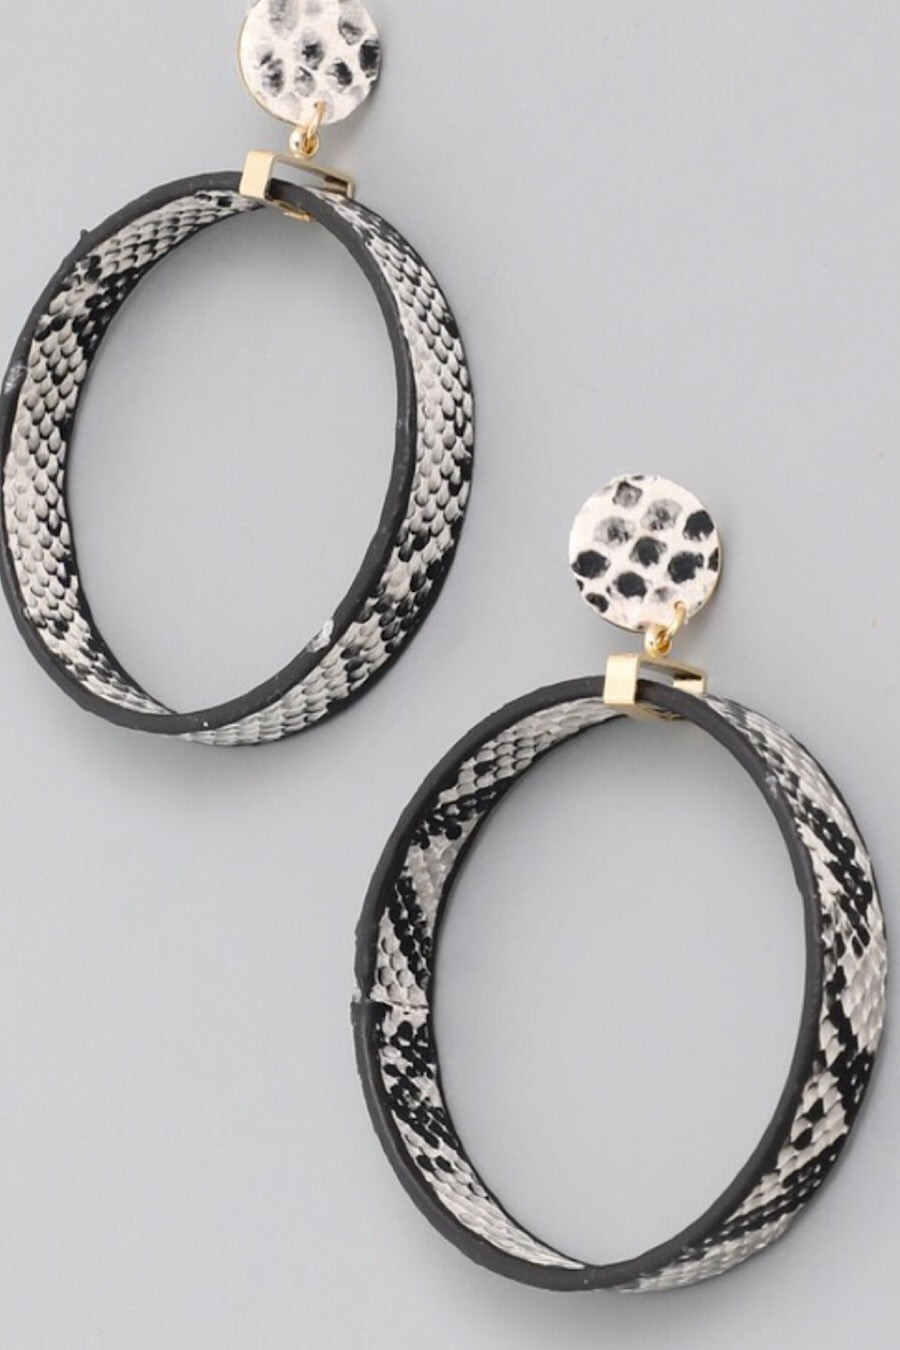 Snake Print Earrings in Grey, Black or Tan